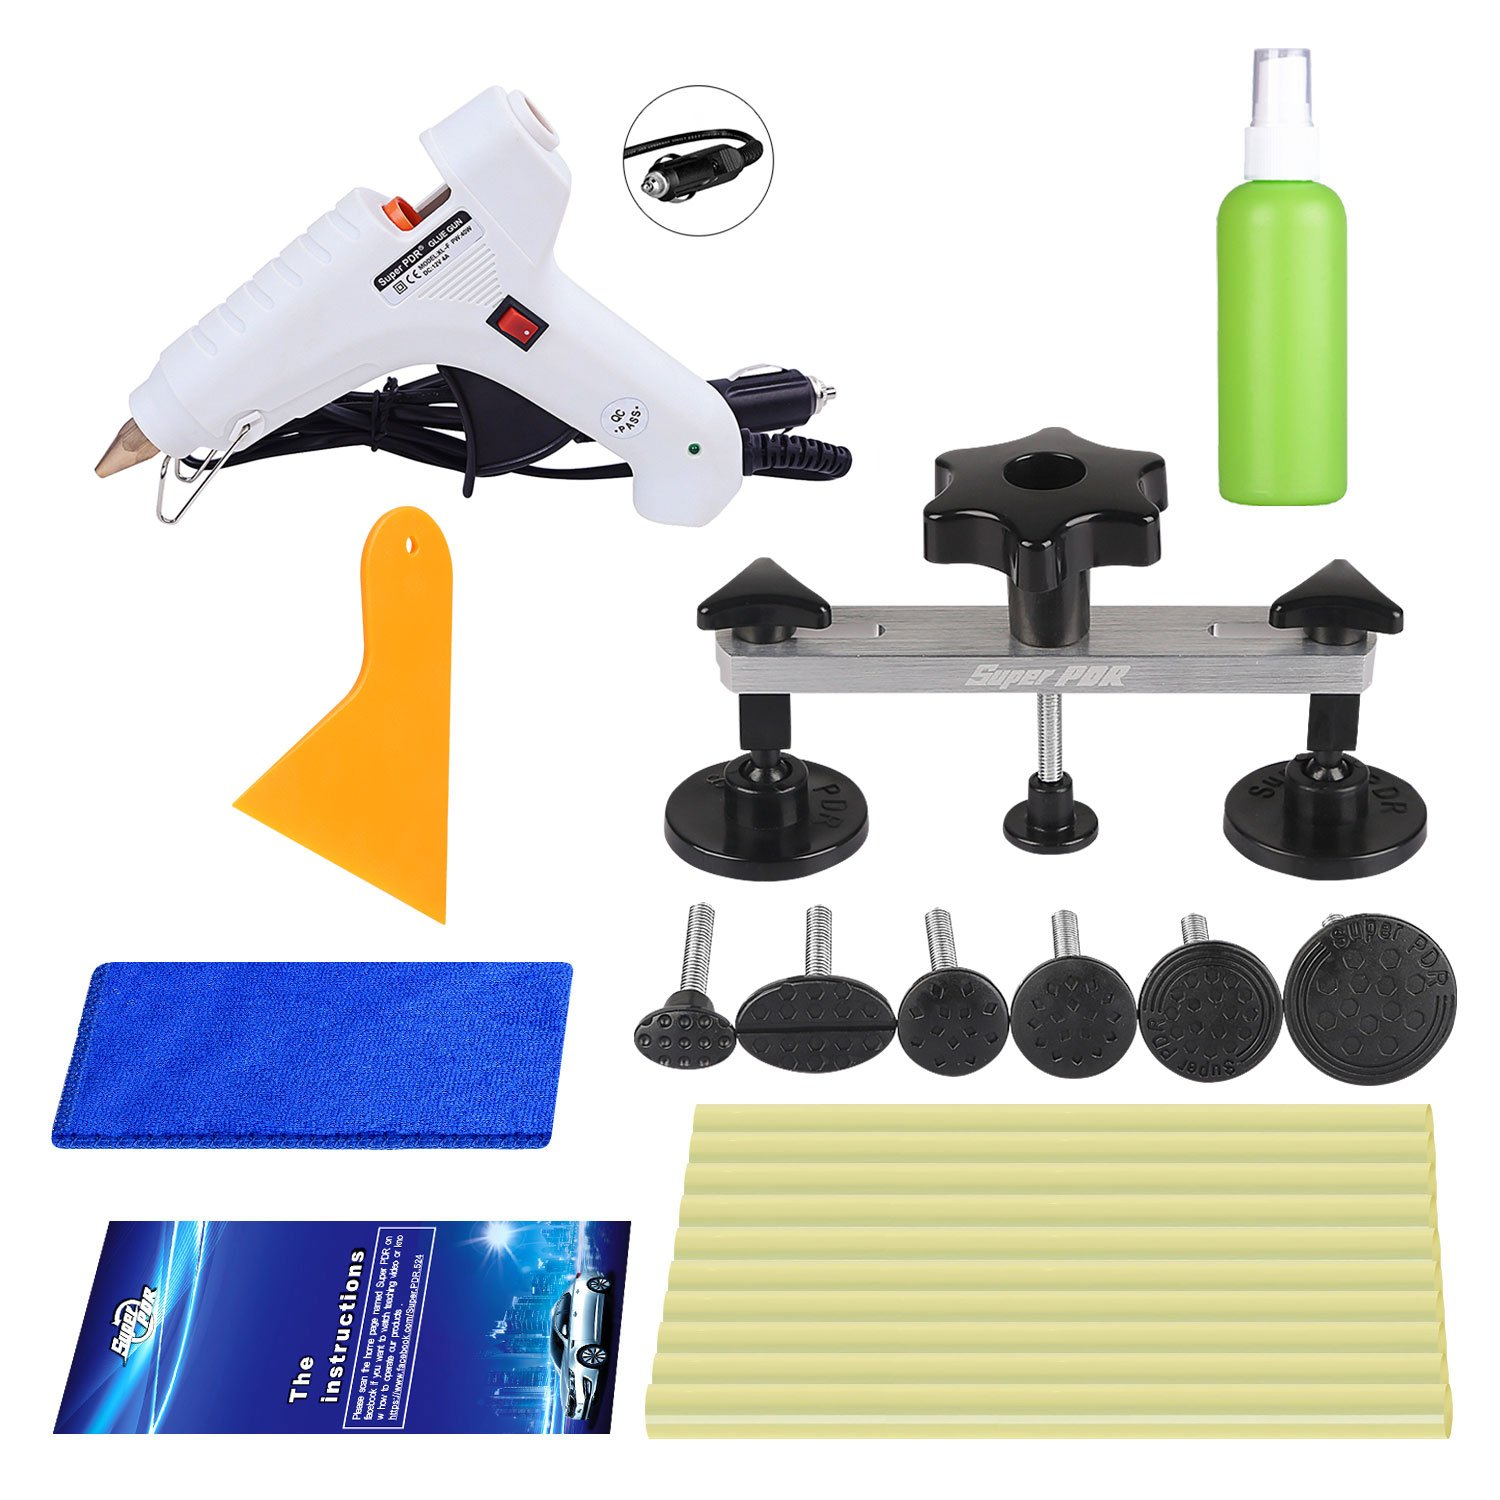 Super PDR 40Pcs New Dent Remover Removal Tools Kit Car Auto Body Hail Damage and Door Dings Repair Devices Set Dent Lifter Bridge Puller